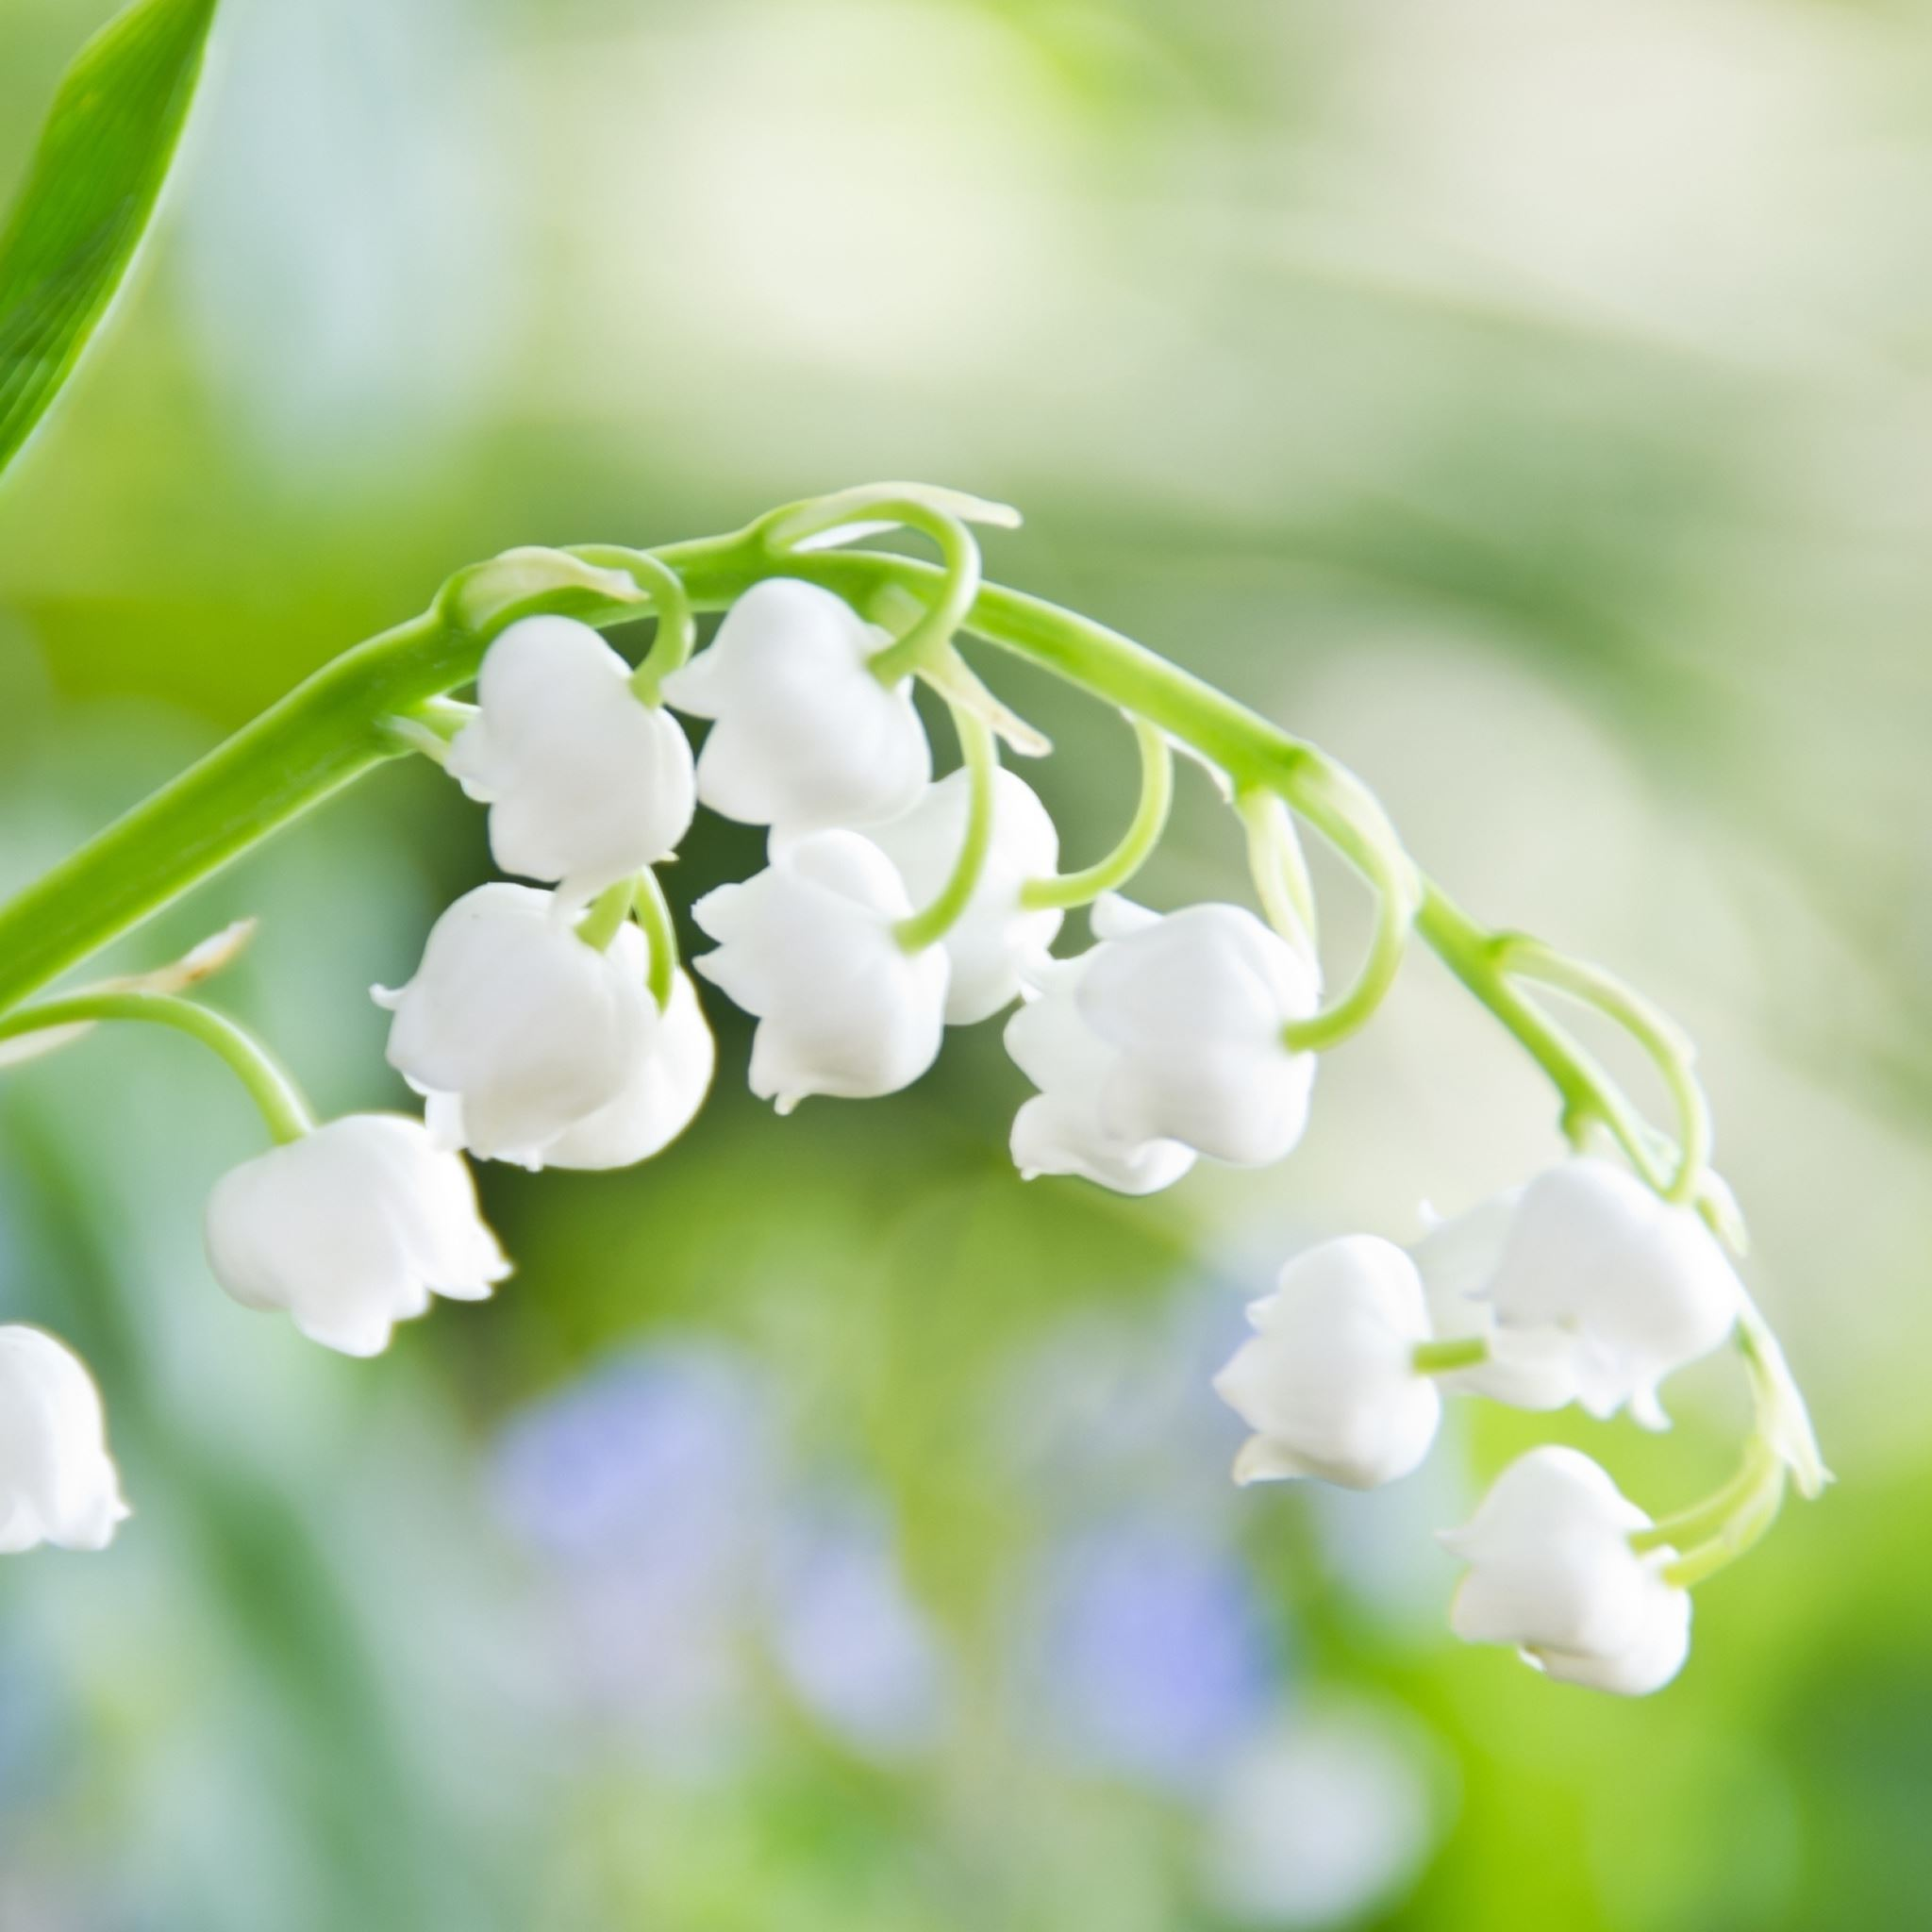 Lily of the Valley Flower Macro iPad Air wallpaper